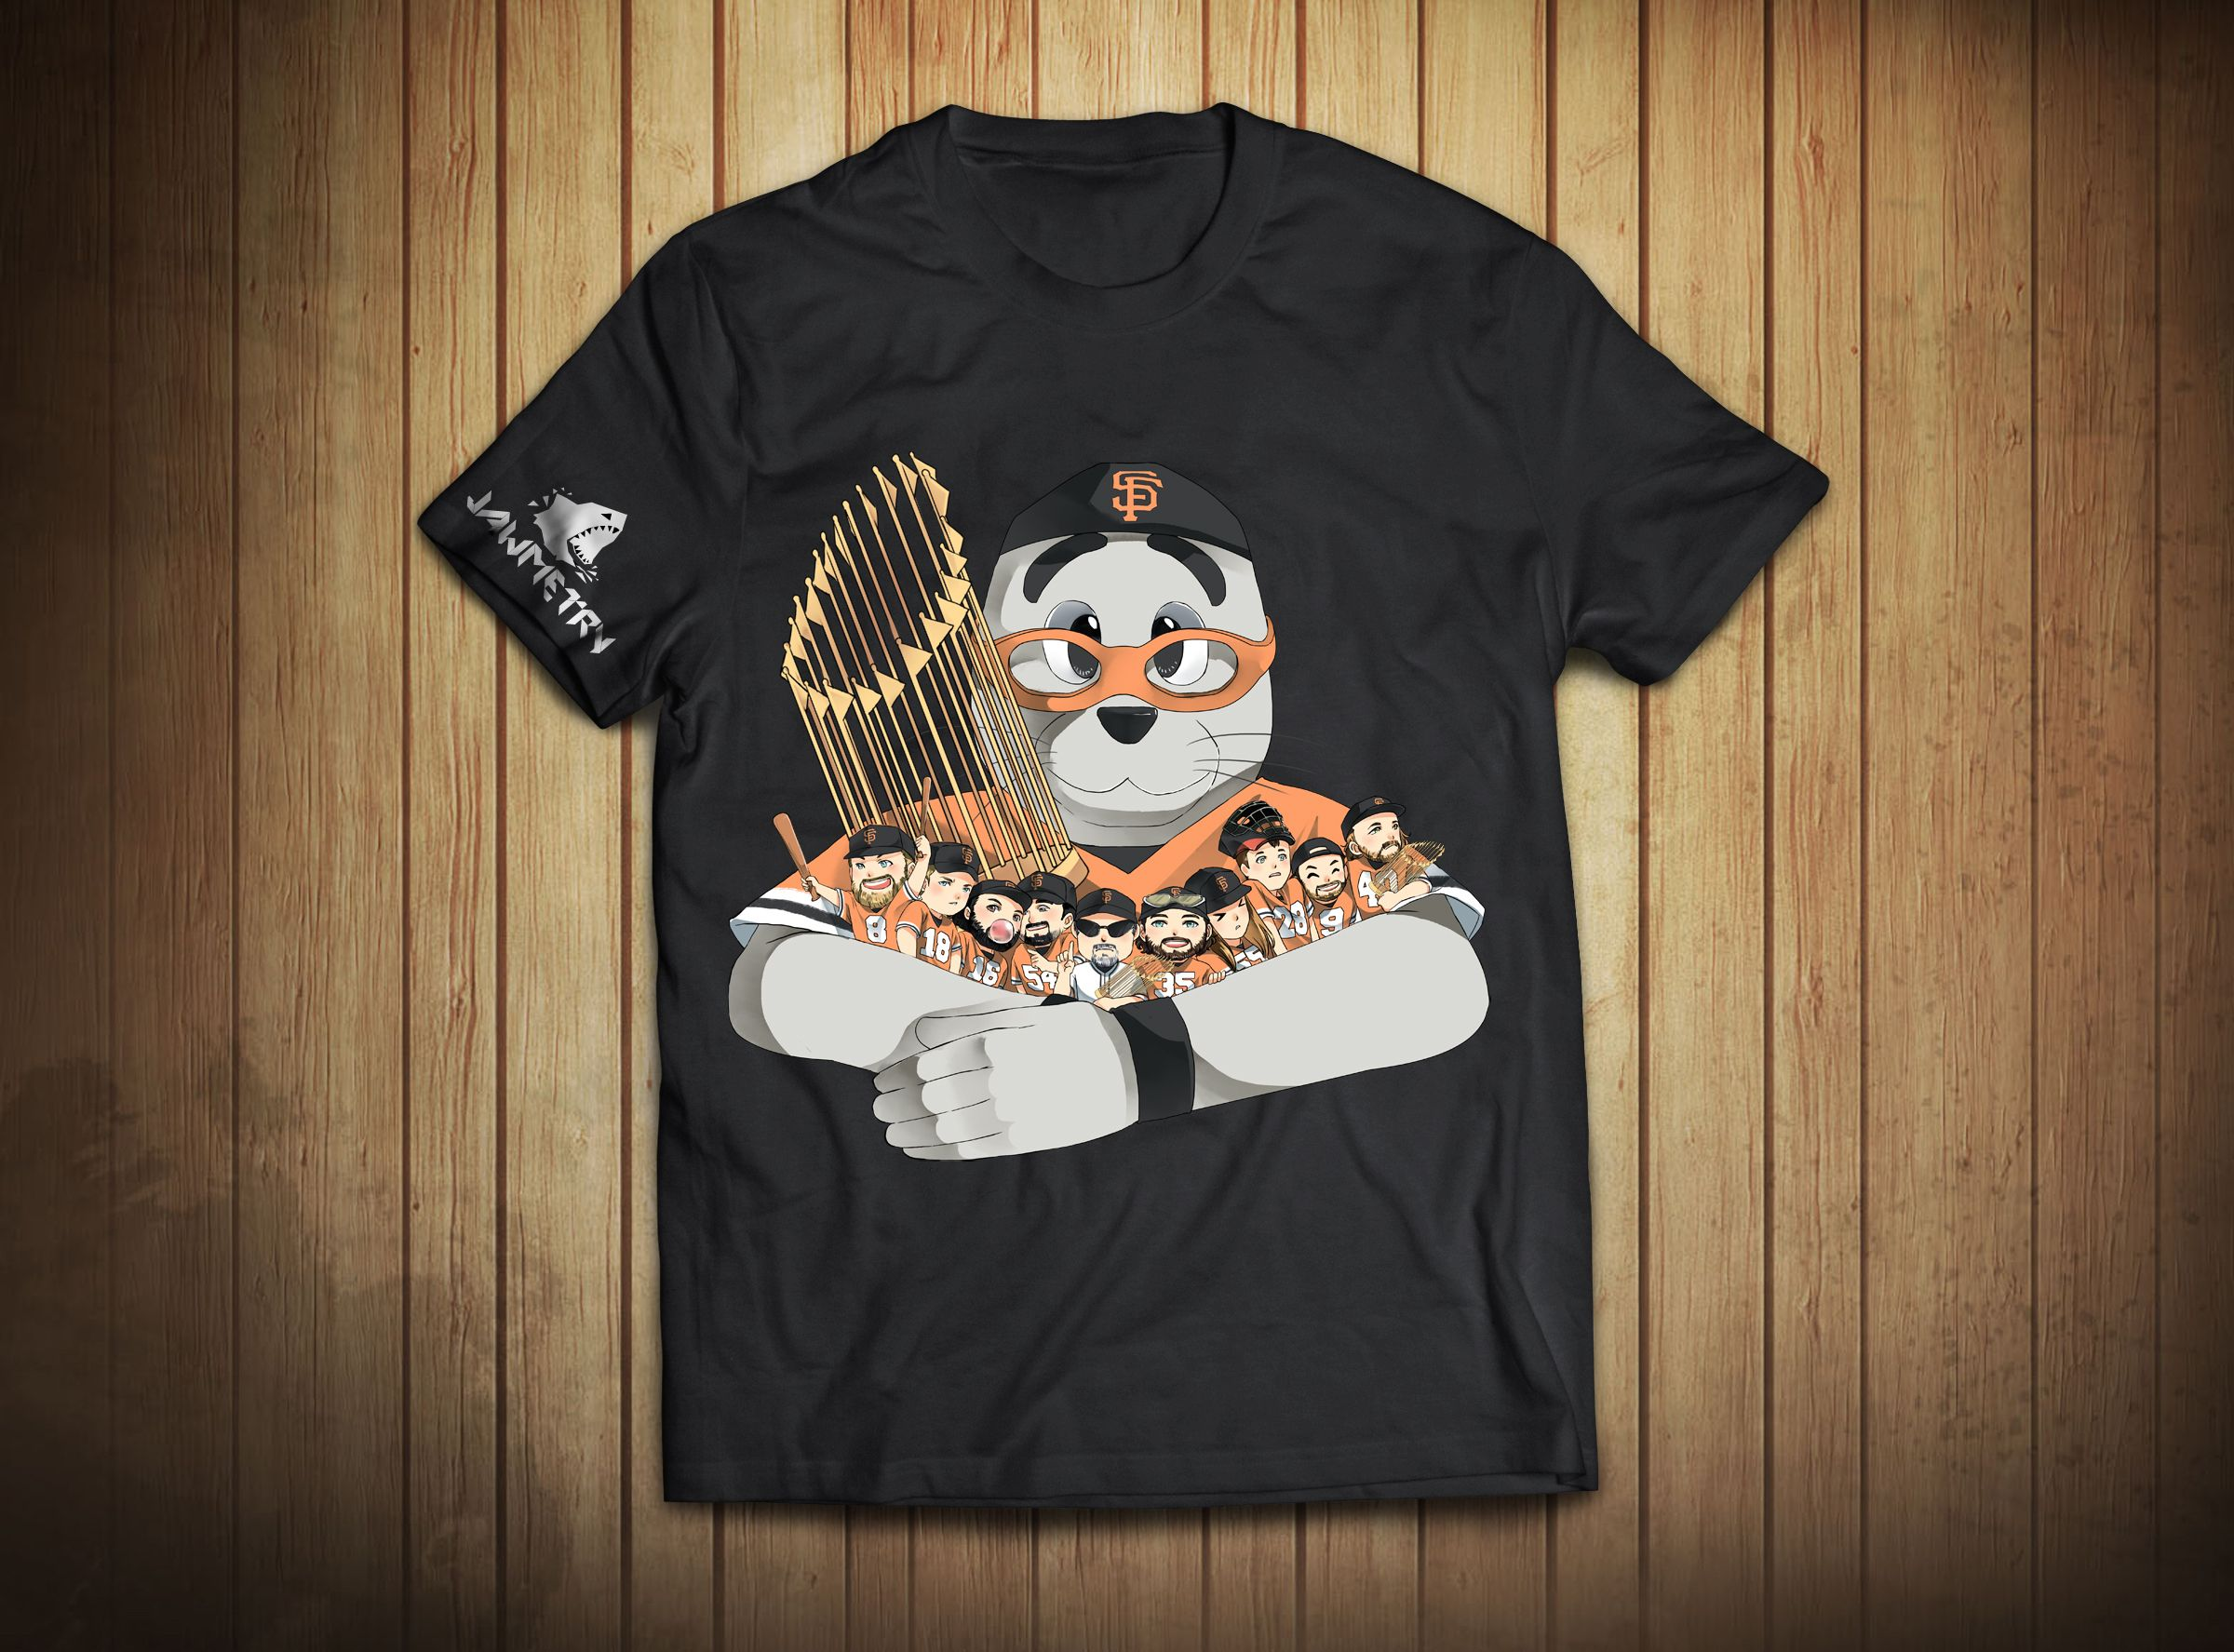 SF Giants have been the heart of the city of San Francisco so we decided to make a design that features the fan favorites on the team with Lou the Seal!